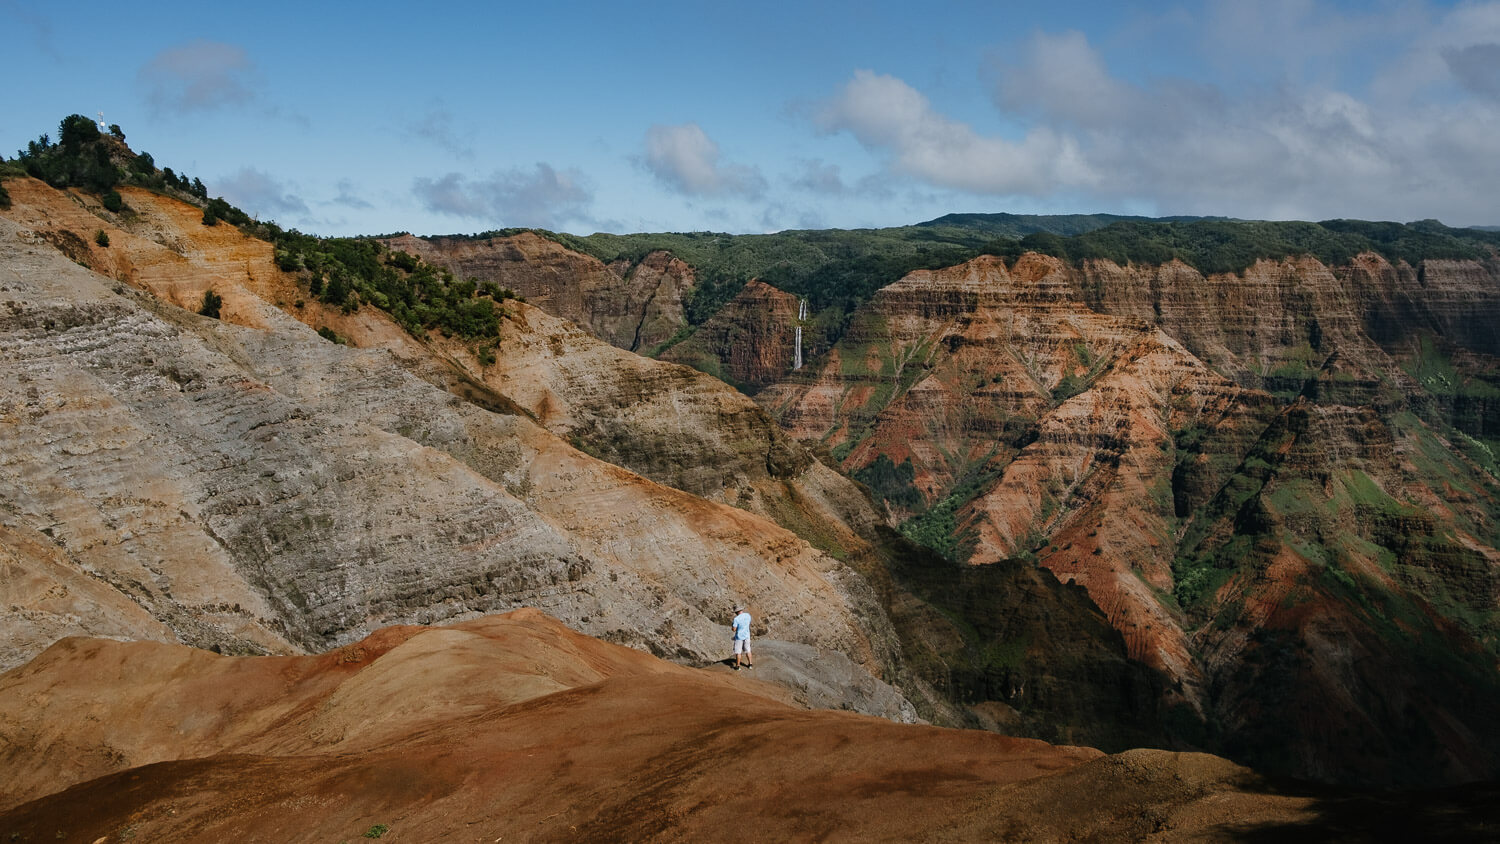 """Waimea Canyon from the first lookout point. Travel photography and guide by © Natasha Lequepeys for """"And Then I Met Yoko"""". #kauai #hawaii #travelguide #travelphotoblog #photoblog #travelblog #travelphotography #landscapephotography #travelitinerary #fujifilm #hiking #beach #beachvacation #getoutdoors #explore #wanderlust #aerialphotography #helicopter #travel #usa"""